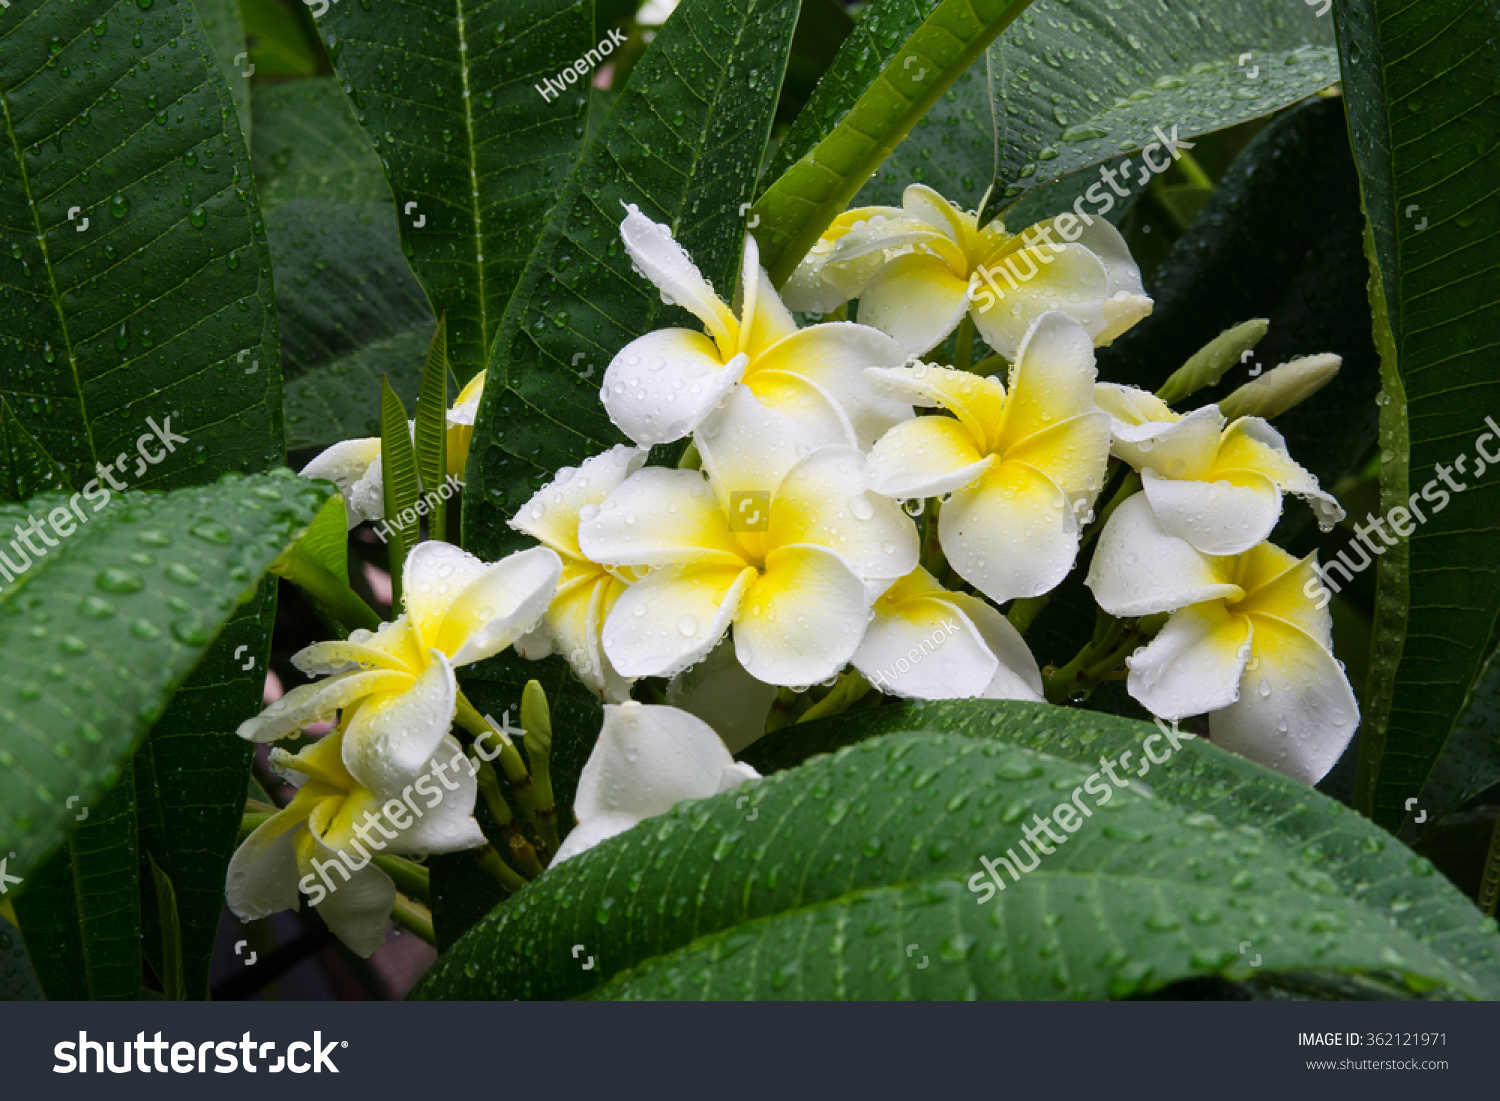 Frangipani plumeria flower drops water after stock photo royalty frangipani or plumeria flower in drops of water after rain traditional flowers hawaiian culture izmirmasajfo